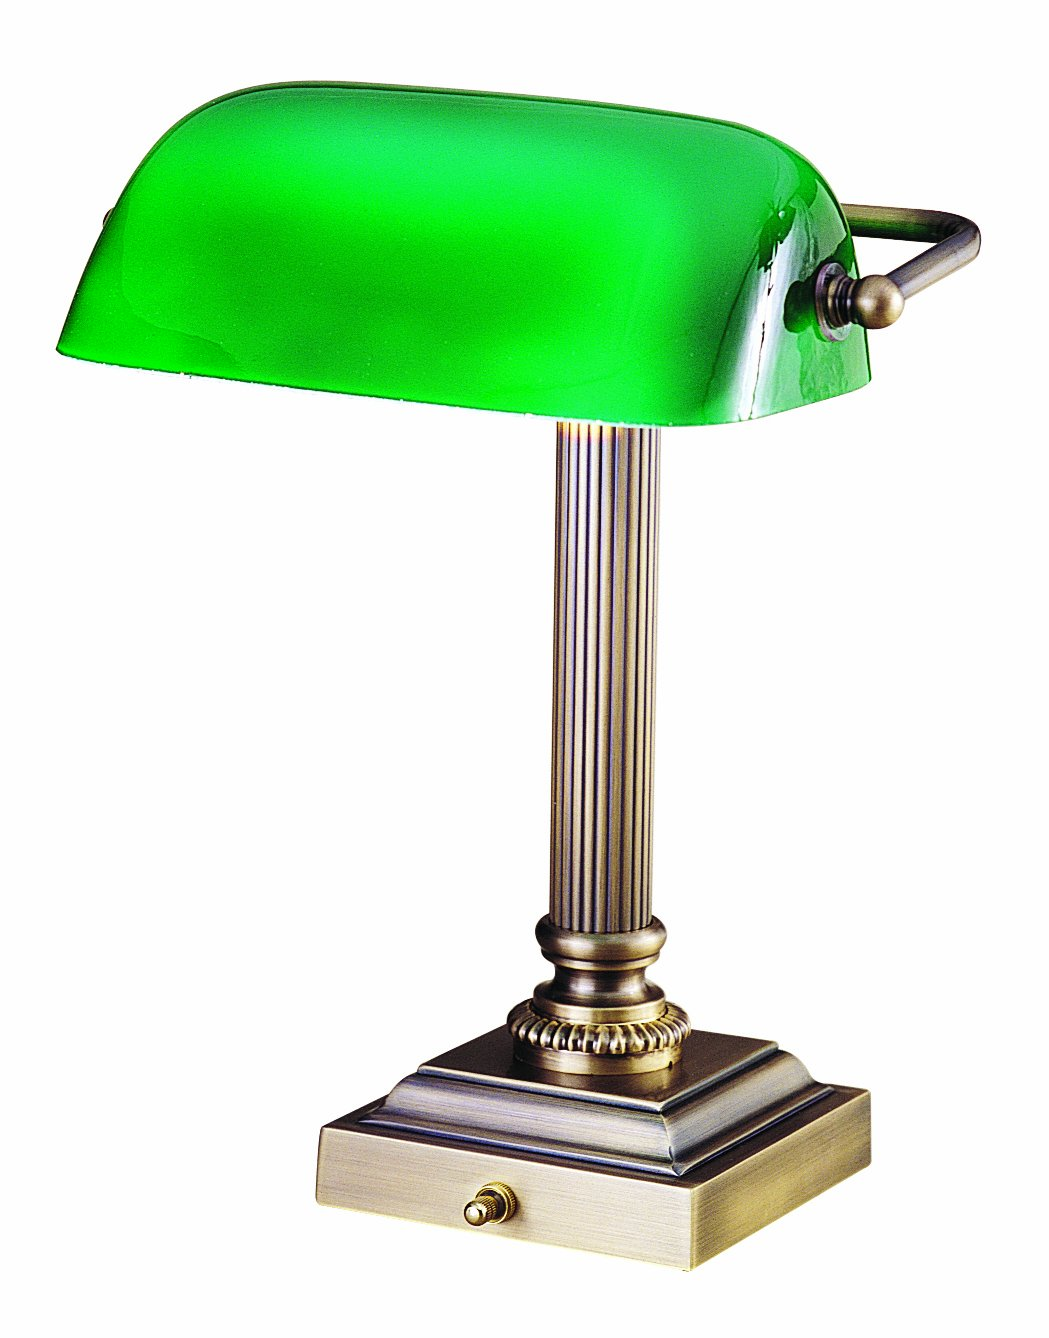 House Of Troy DSK428 G61 Shelburne Collection 13 3/4 Inch Portable Desk Lamp,  Polished Brass With Green Glass Shade   Desk Lamp Clamp On   Amazon.com